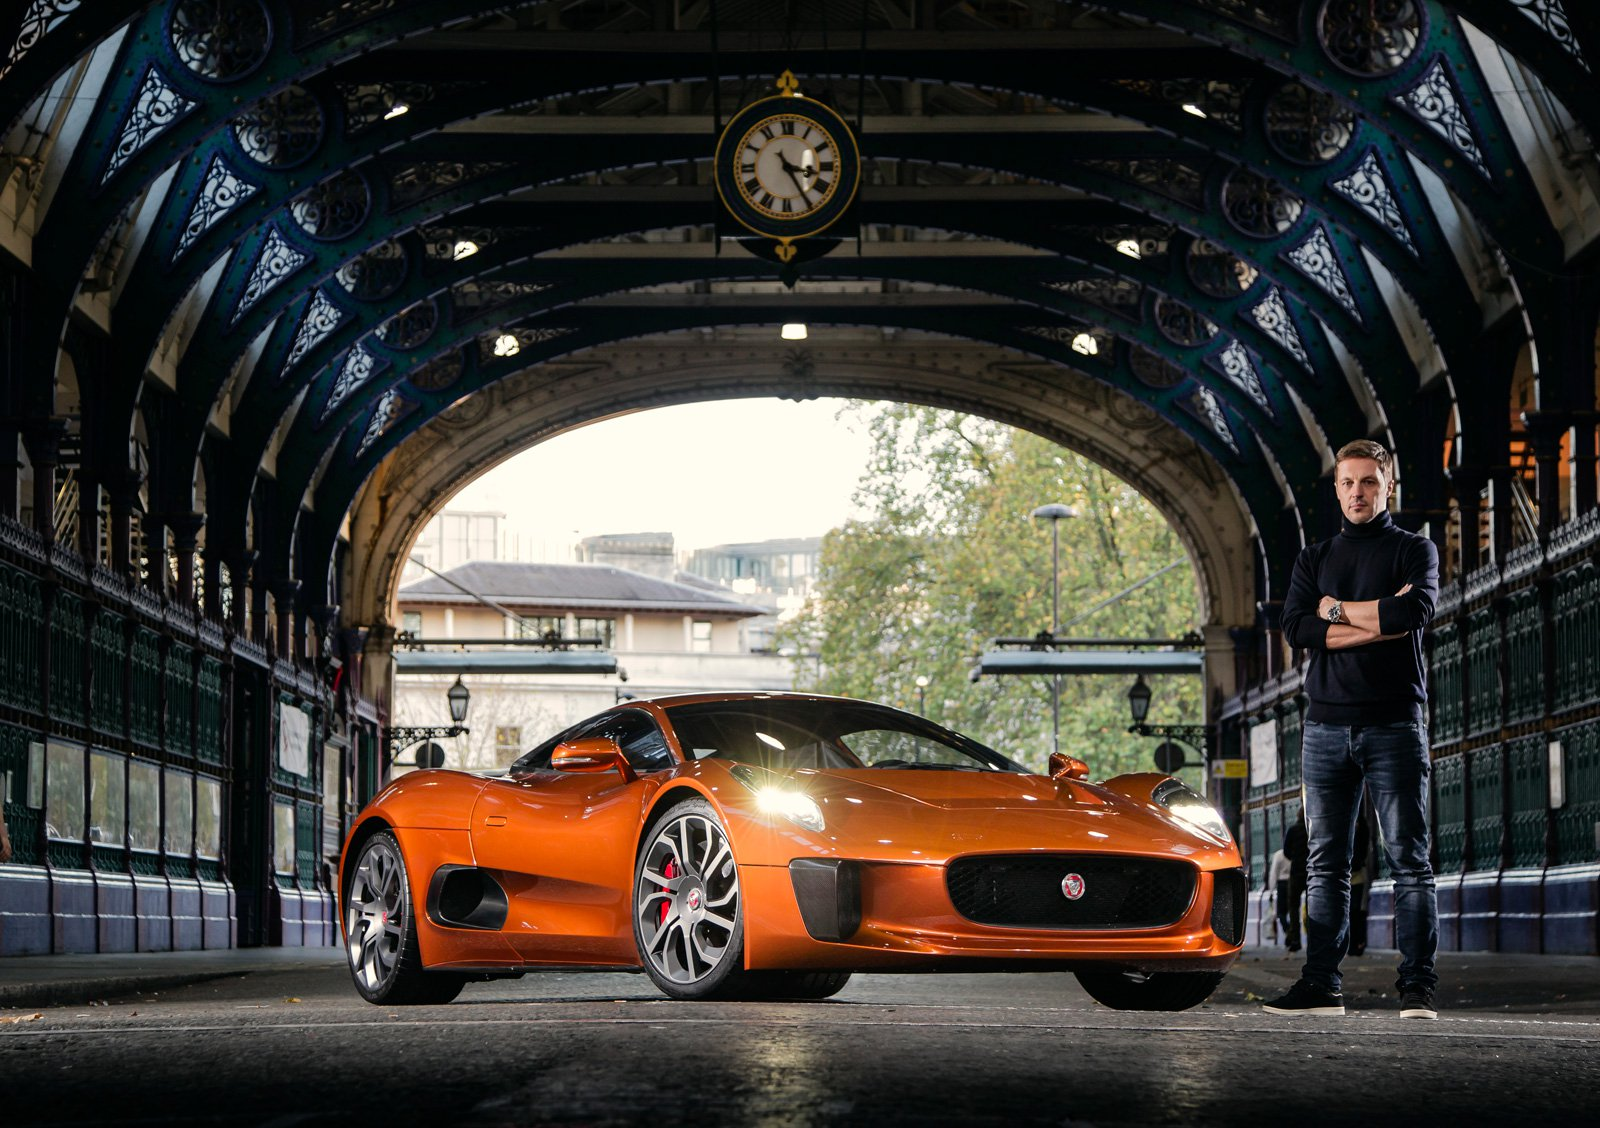 Why Jaguar Won't Be Building Any More New Supercars